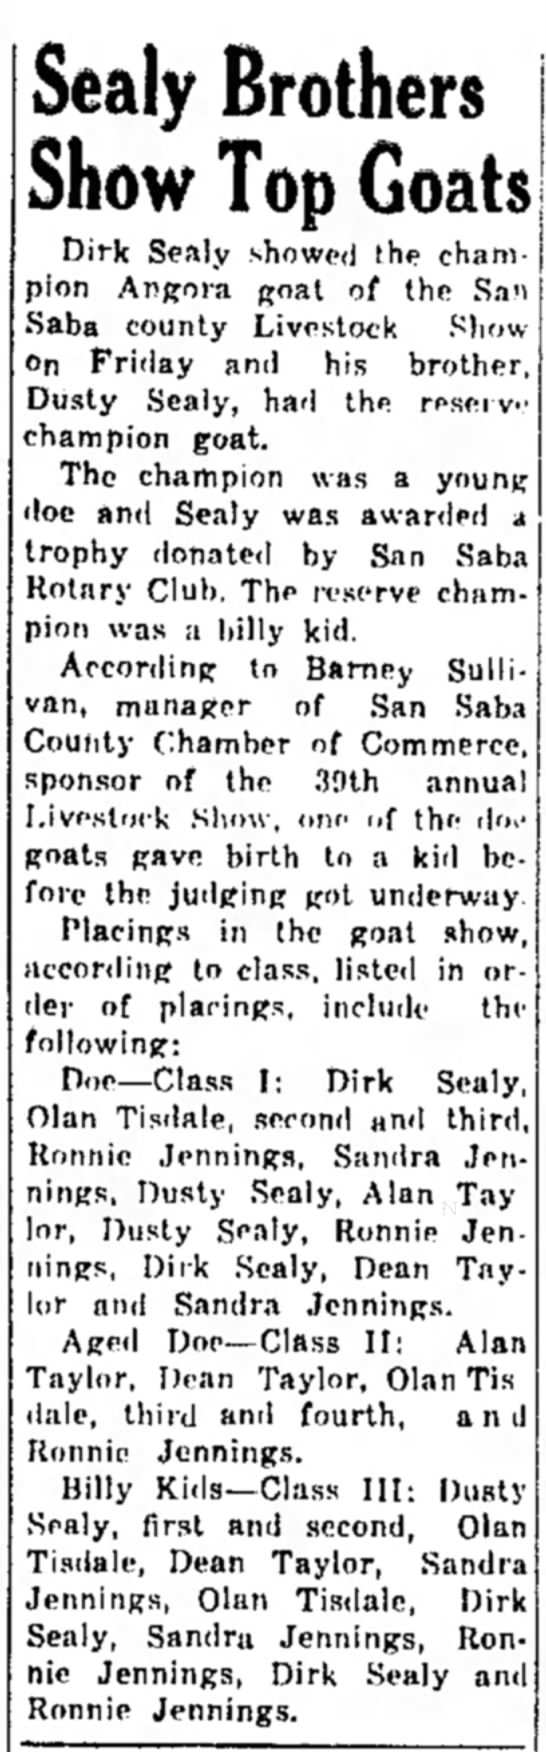 San Saba County Livestock Show The San Saba News & Star Jan 29, 1970 -